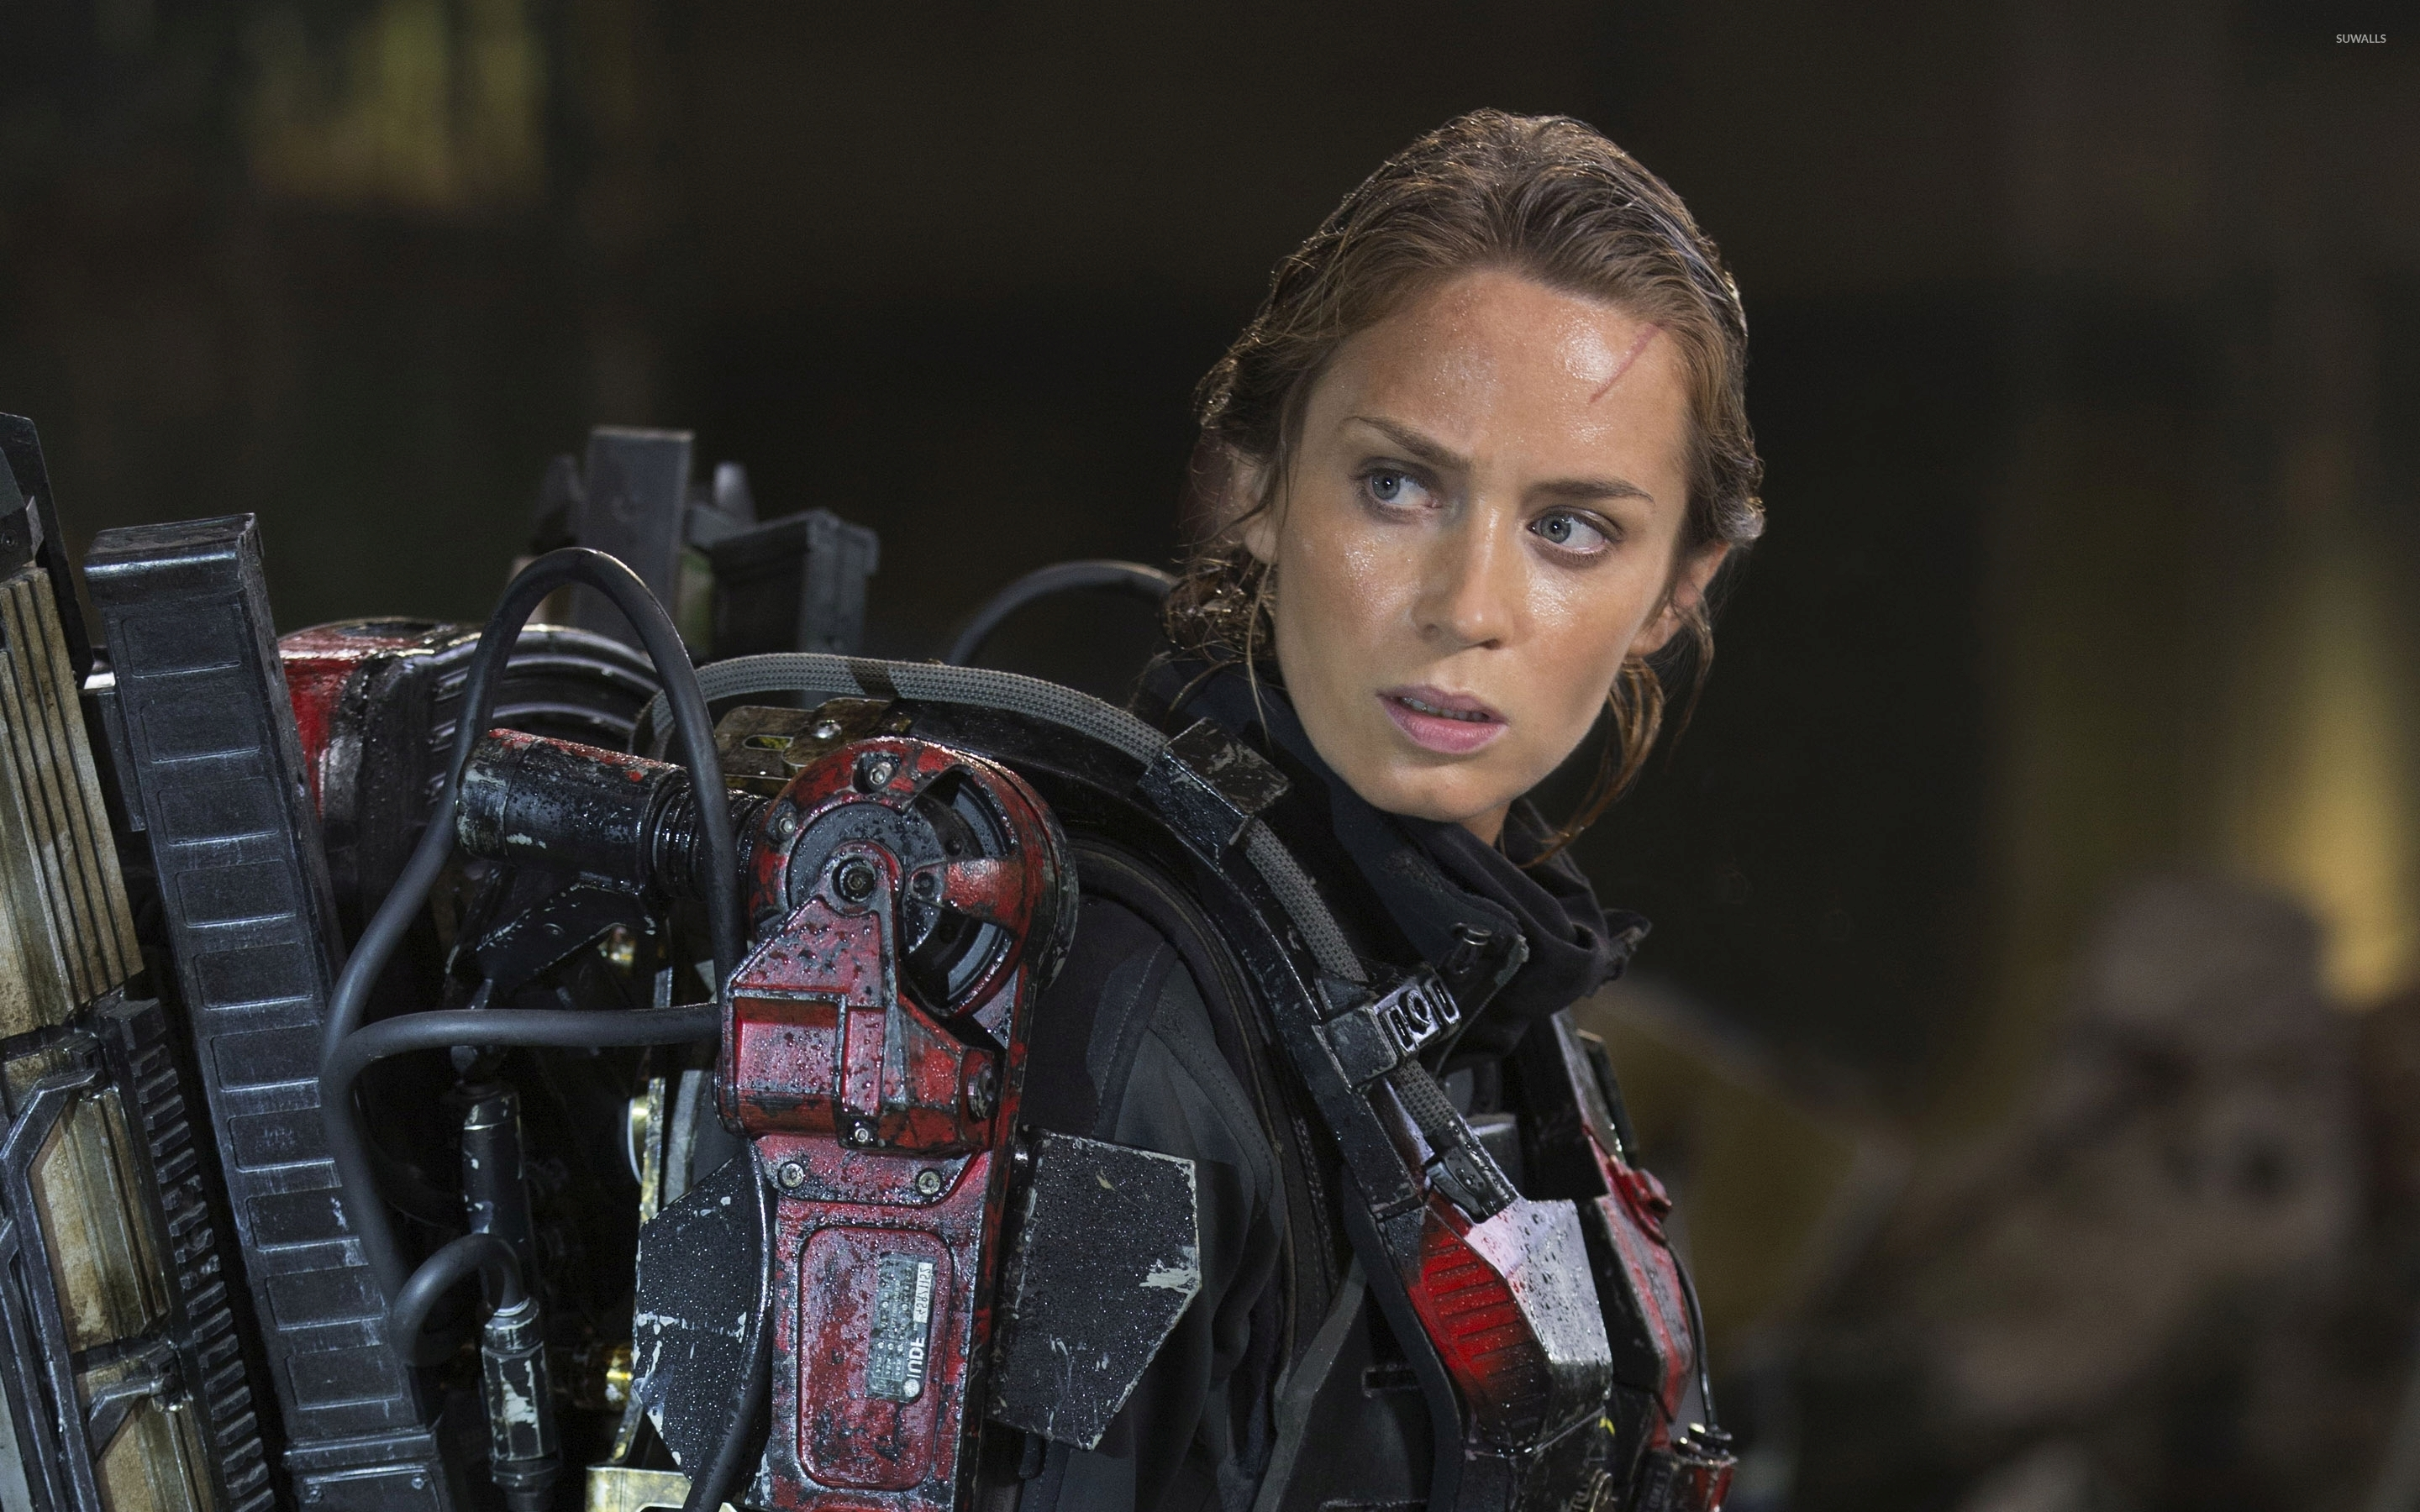 Rita Edge Of Tomorrow 5 Wallpaper Movie Wallpapers 36591